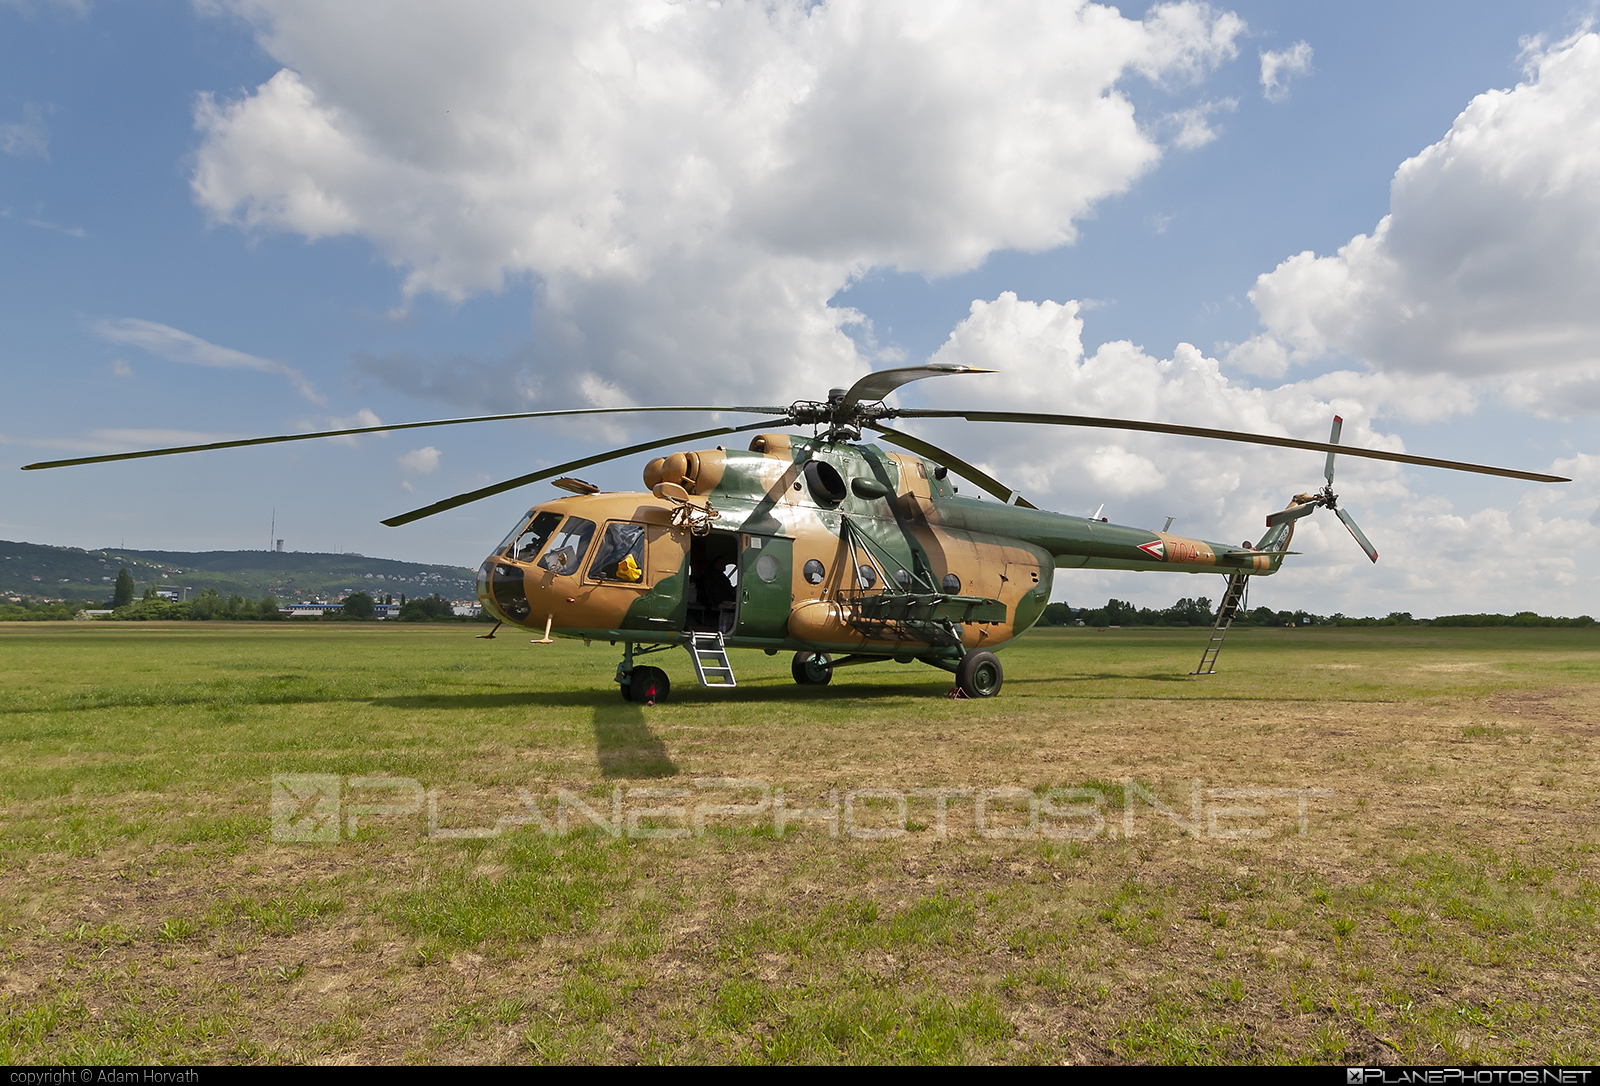 Mil Mi-17N - 704 operated by Magyar Légierő (Hungarian Air Force) #hungarianairforce #magyarlegiero #mi17 #mi17n #mil #mil17 #milhelicopters